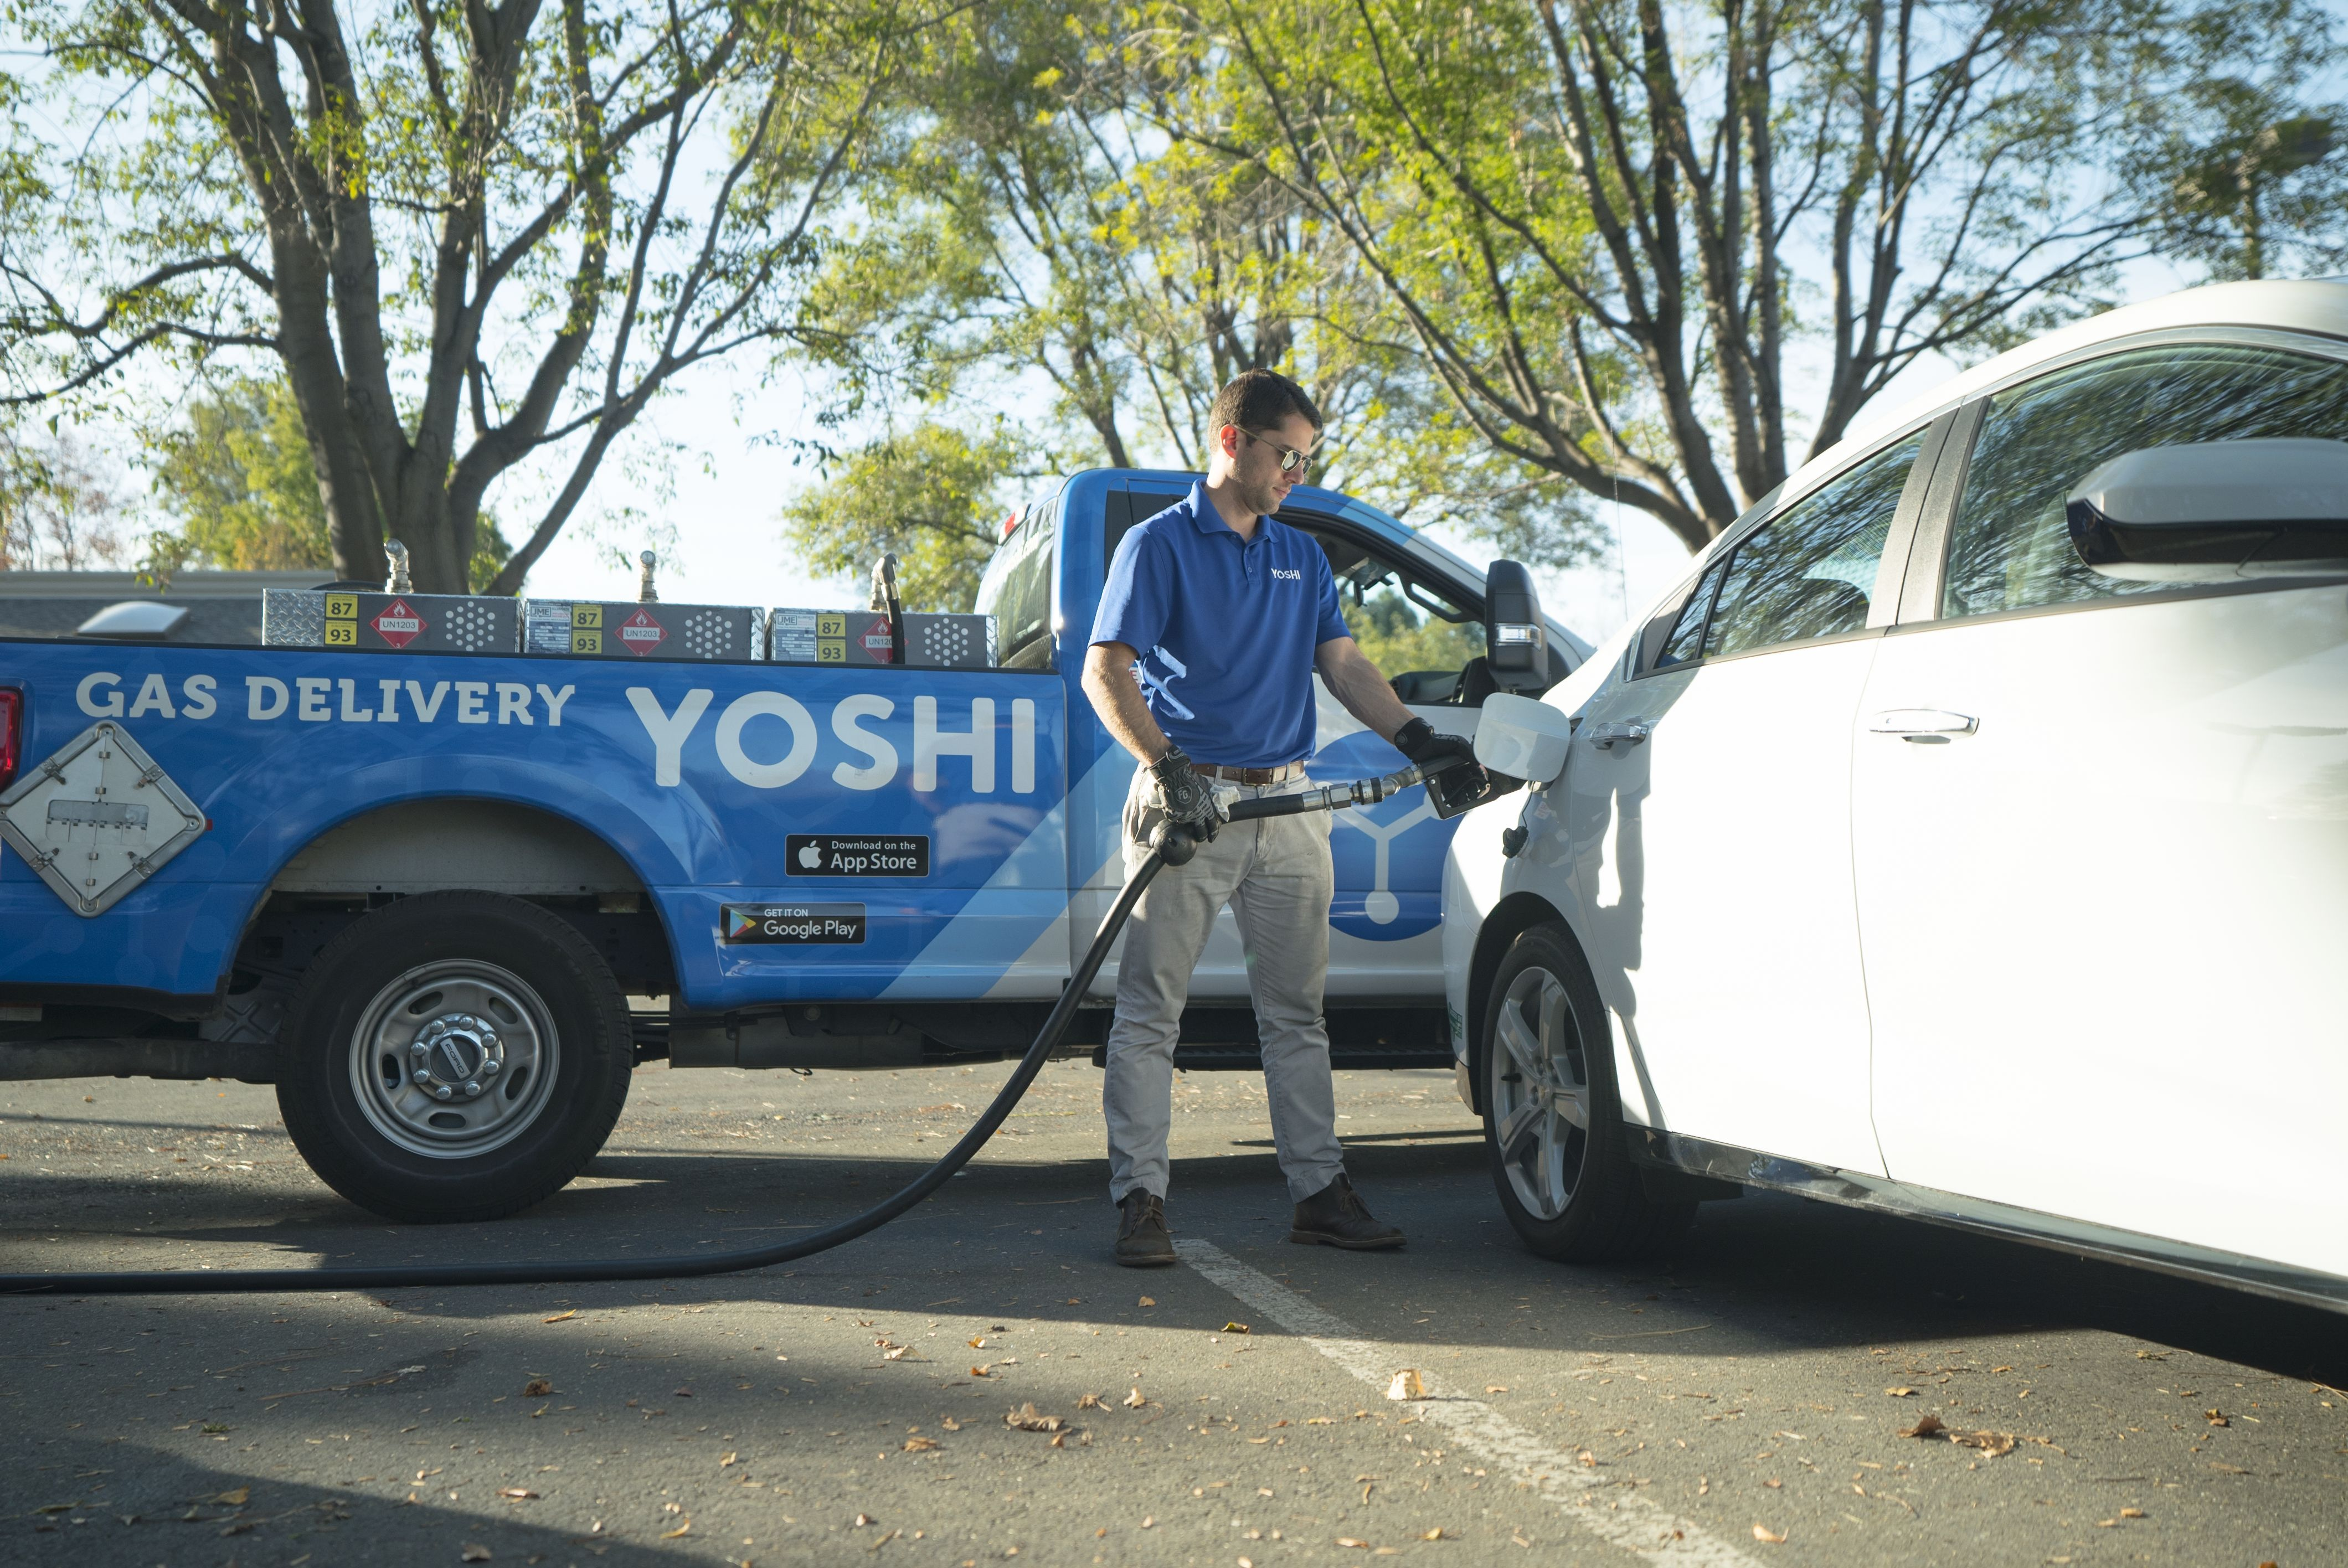 Yoshi delivers gas, oil changes, car washes, and anything else your car needs, while it's parked so you can keep moving.